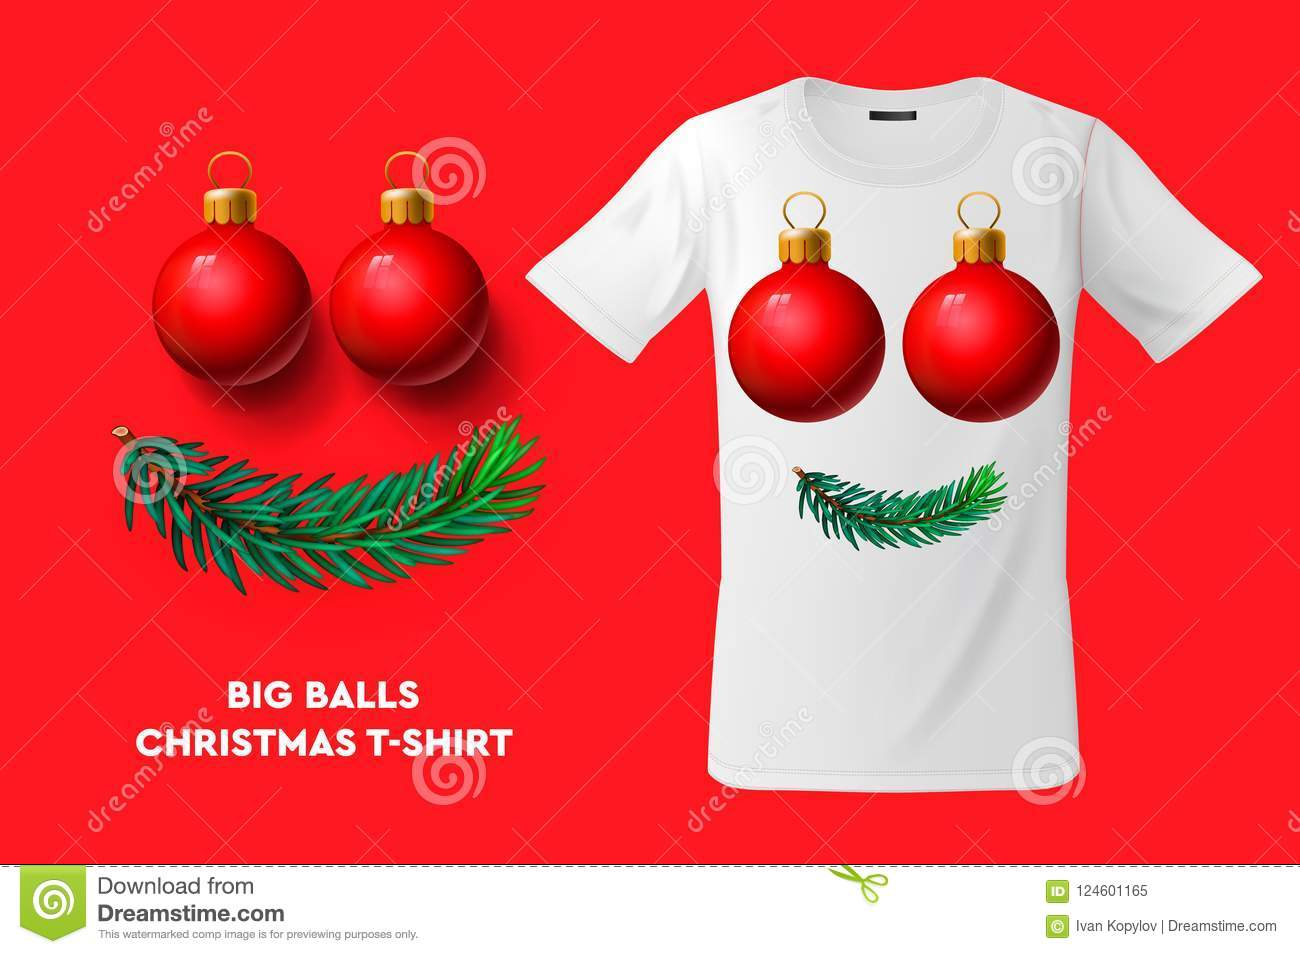 Big Balls Christmas T-shirt Design, Modern Print Use For Sweatshirts ...